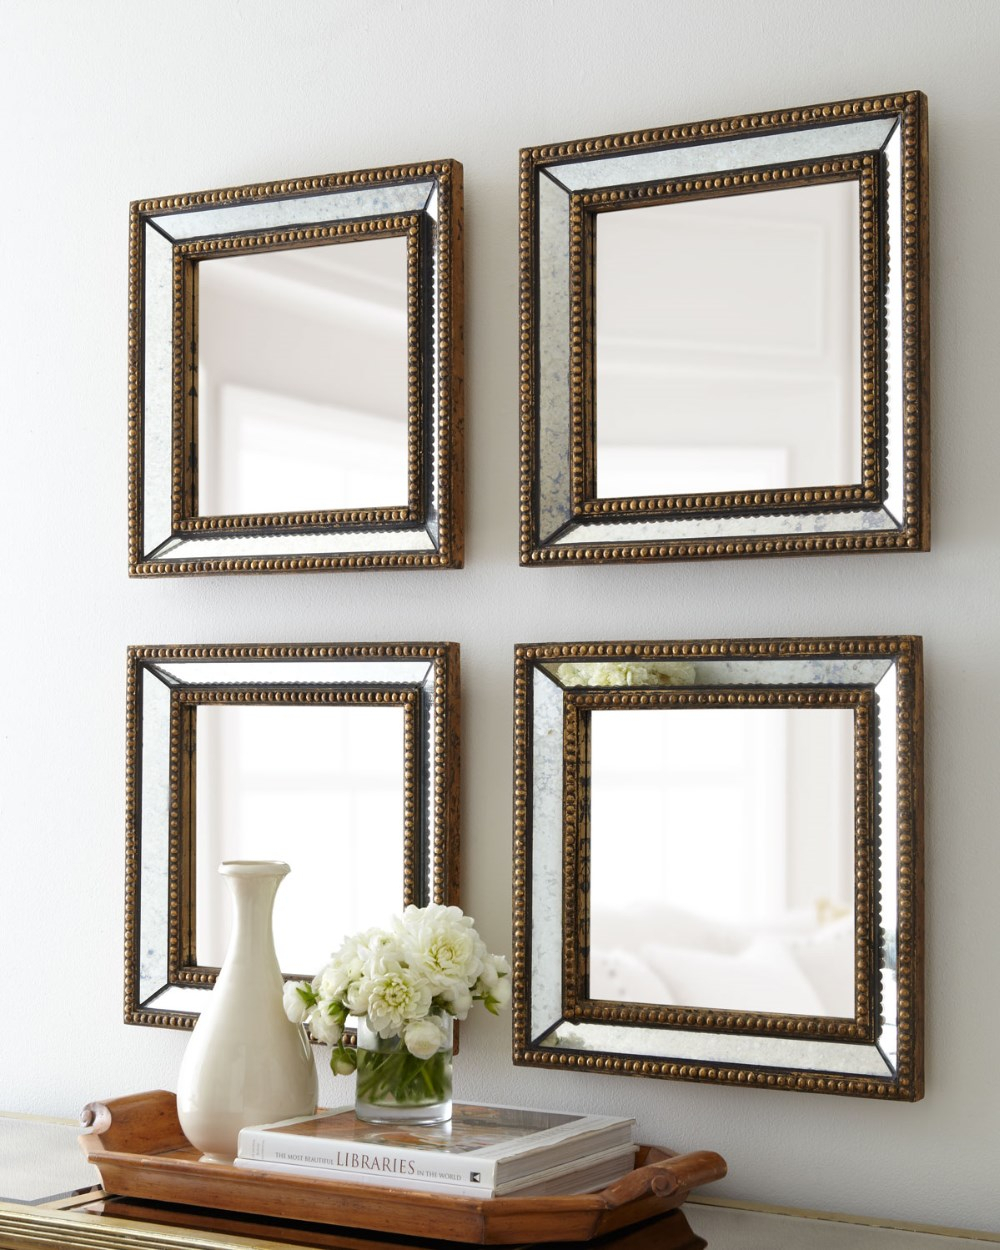 Beaded Square Home Decor Wall Mirror, View Mirror, Guanding In Caja Rectangle Glass Frame Wall Mirrors (View 23 of 30)